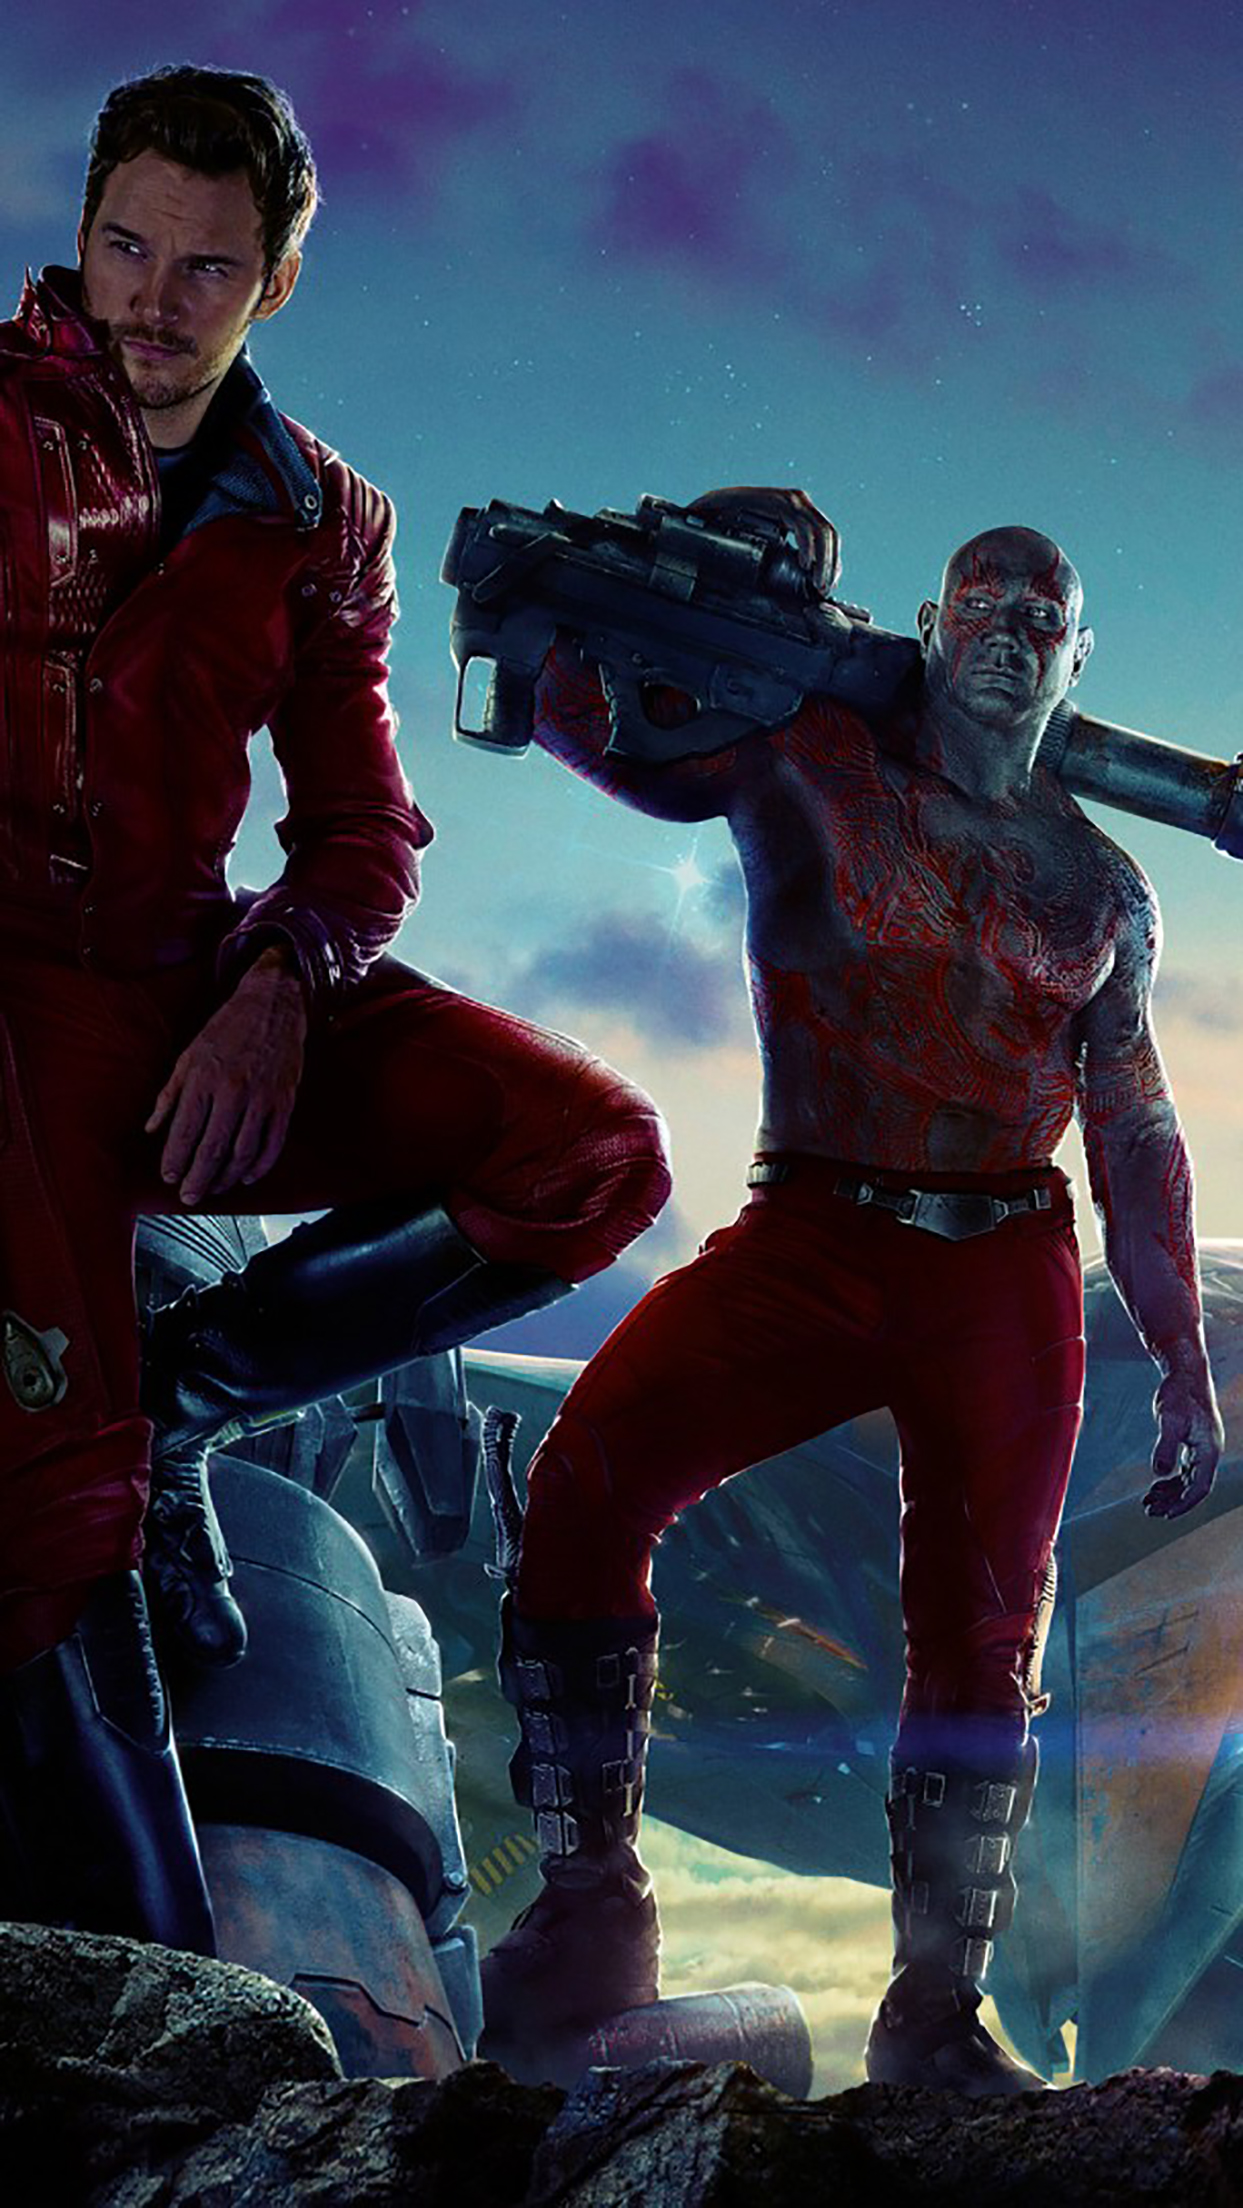 Guardians Of The Galaxy Poster 2 3Wallpapers iPhone Parallax Guardians Of The Galaxy : Poster 2